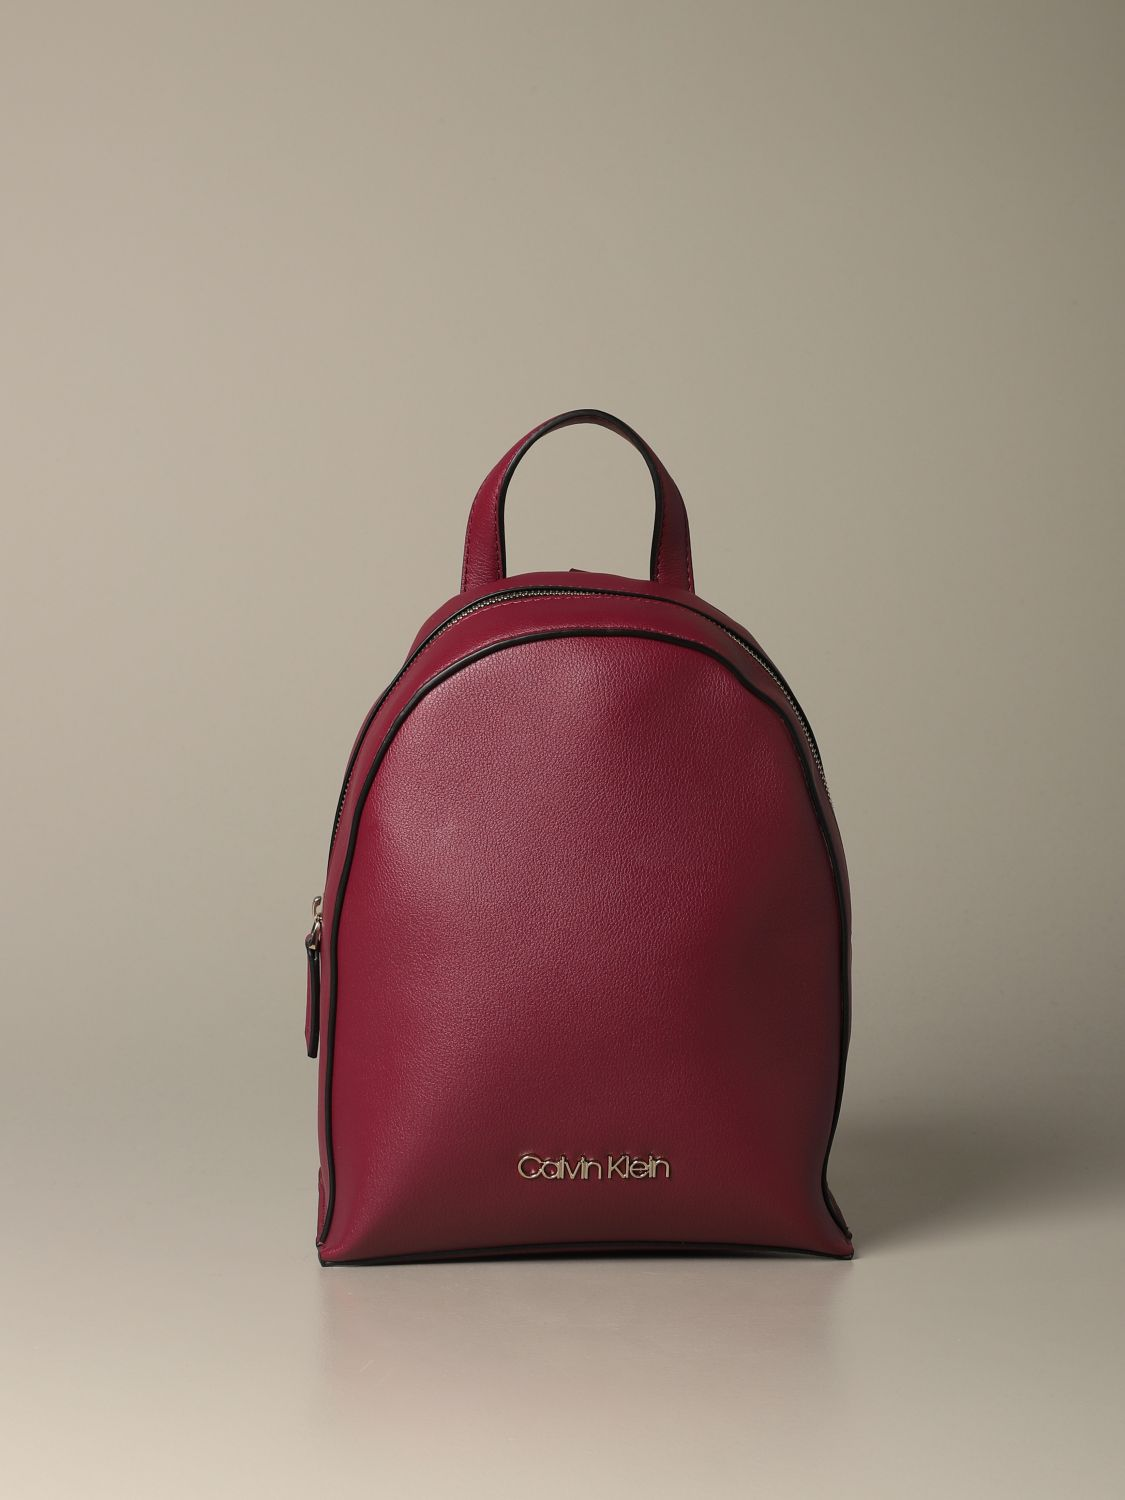 Backpack women Calvin Klein red 1